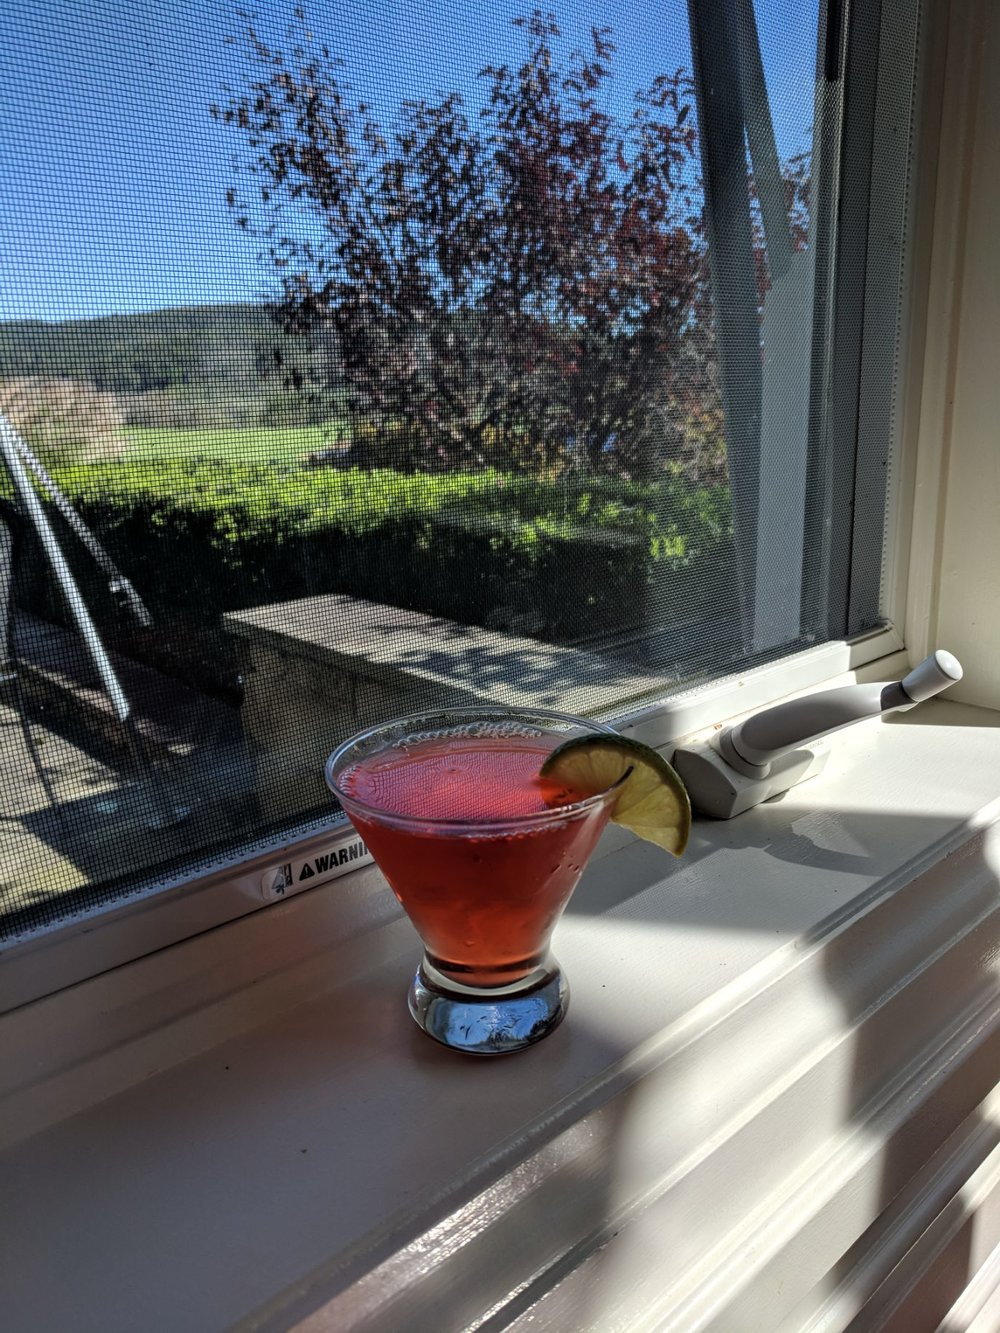 Washington Apple Martini